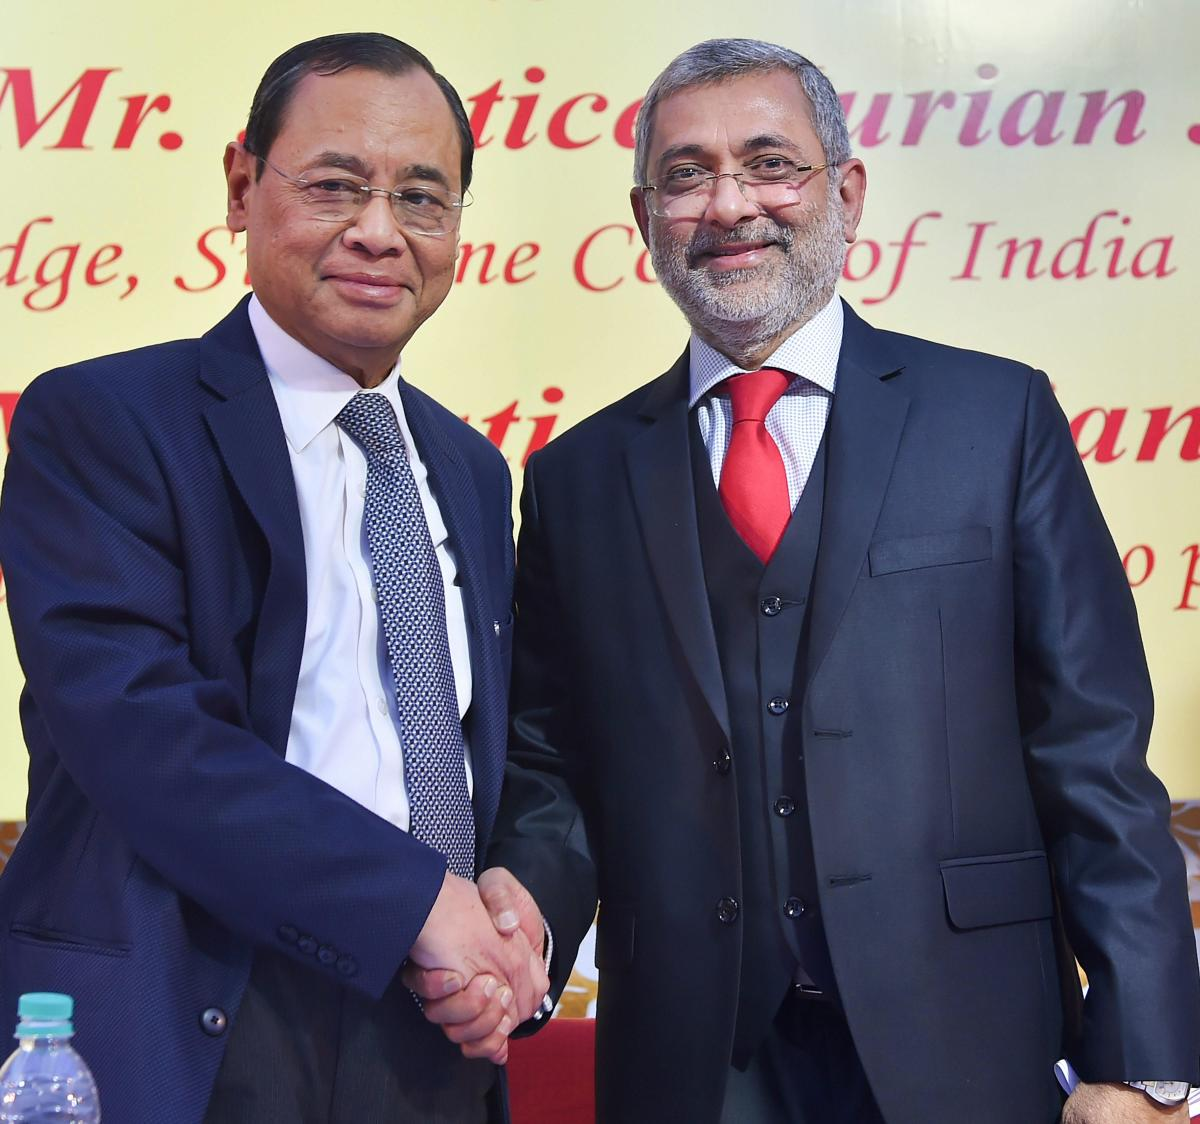 Chief Justice of India Justice Ranjan Gogoi (L) shakes hands with Justice Kurian Joseph during the latter's farewell function at the Supreme Court, in New Delhi, on Thursday. PTI